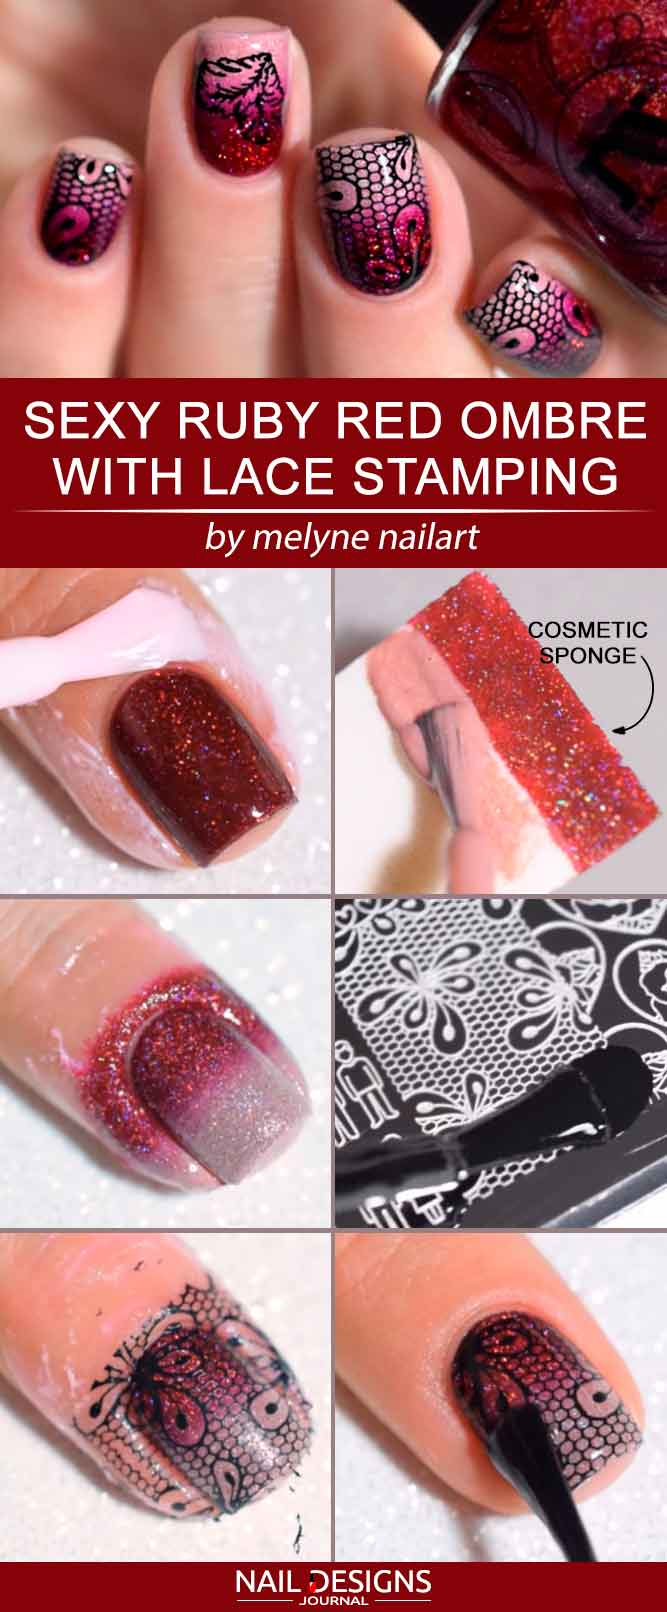 Sexy Ruby Red Ombre With Lace Stamping #rednails #ombrenails #stampingnails #lacenails